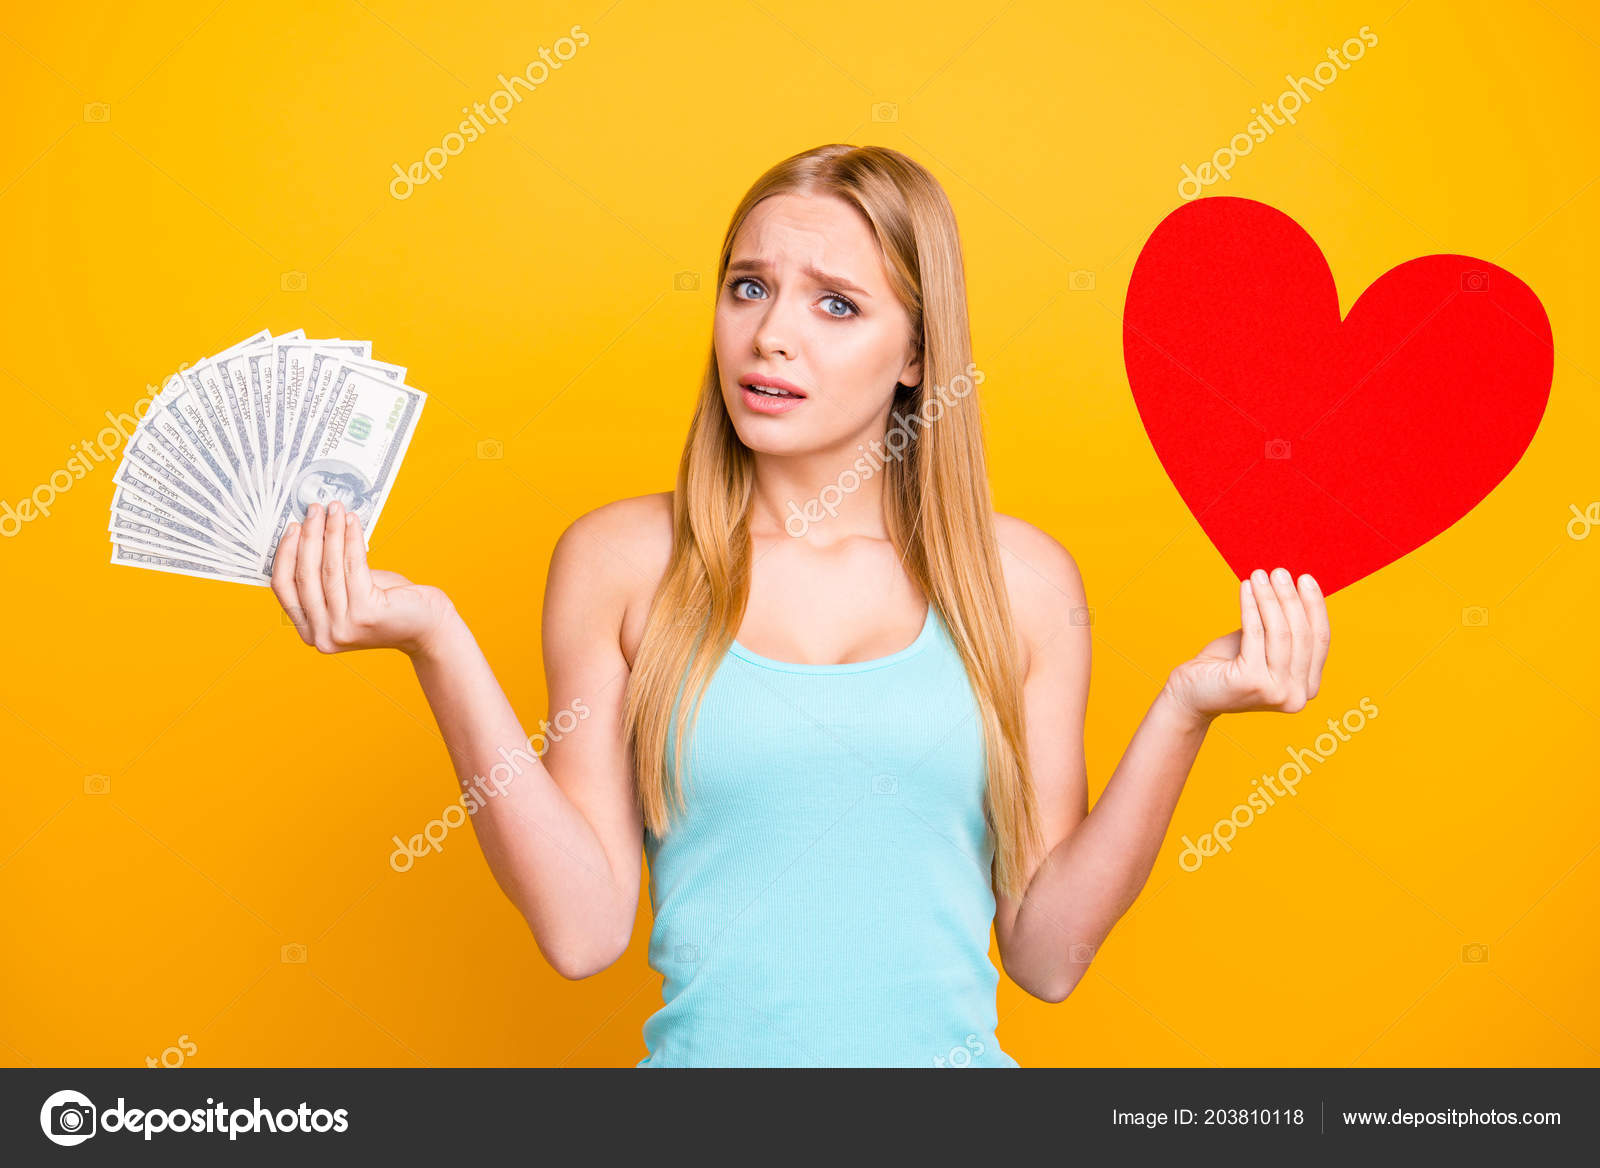 324c6f0ca898 Young beautiful girl isolated on yellow background looks at the camera and  hold money in one hand and big paper carton heart figure in other.